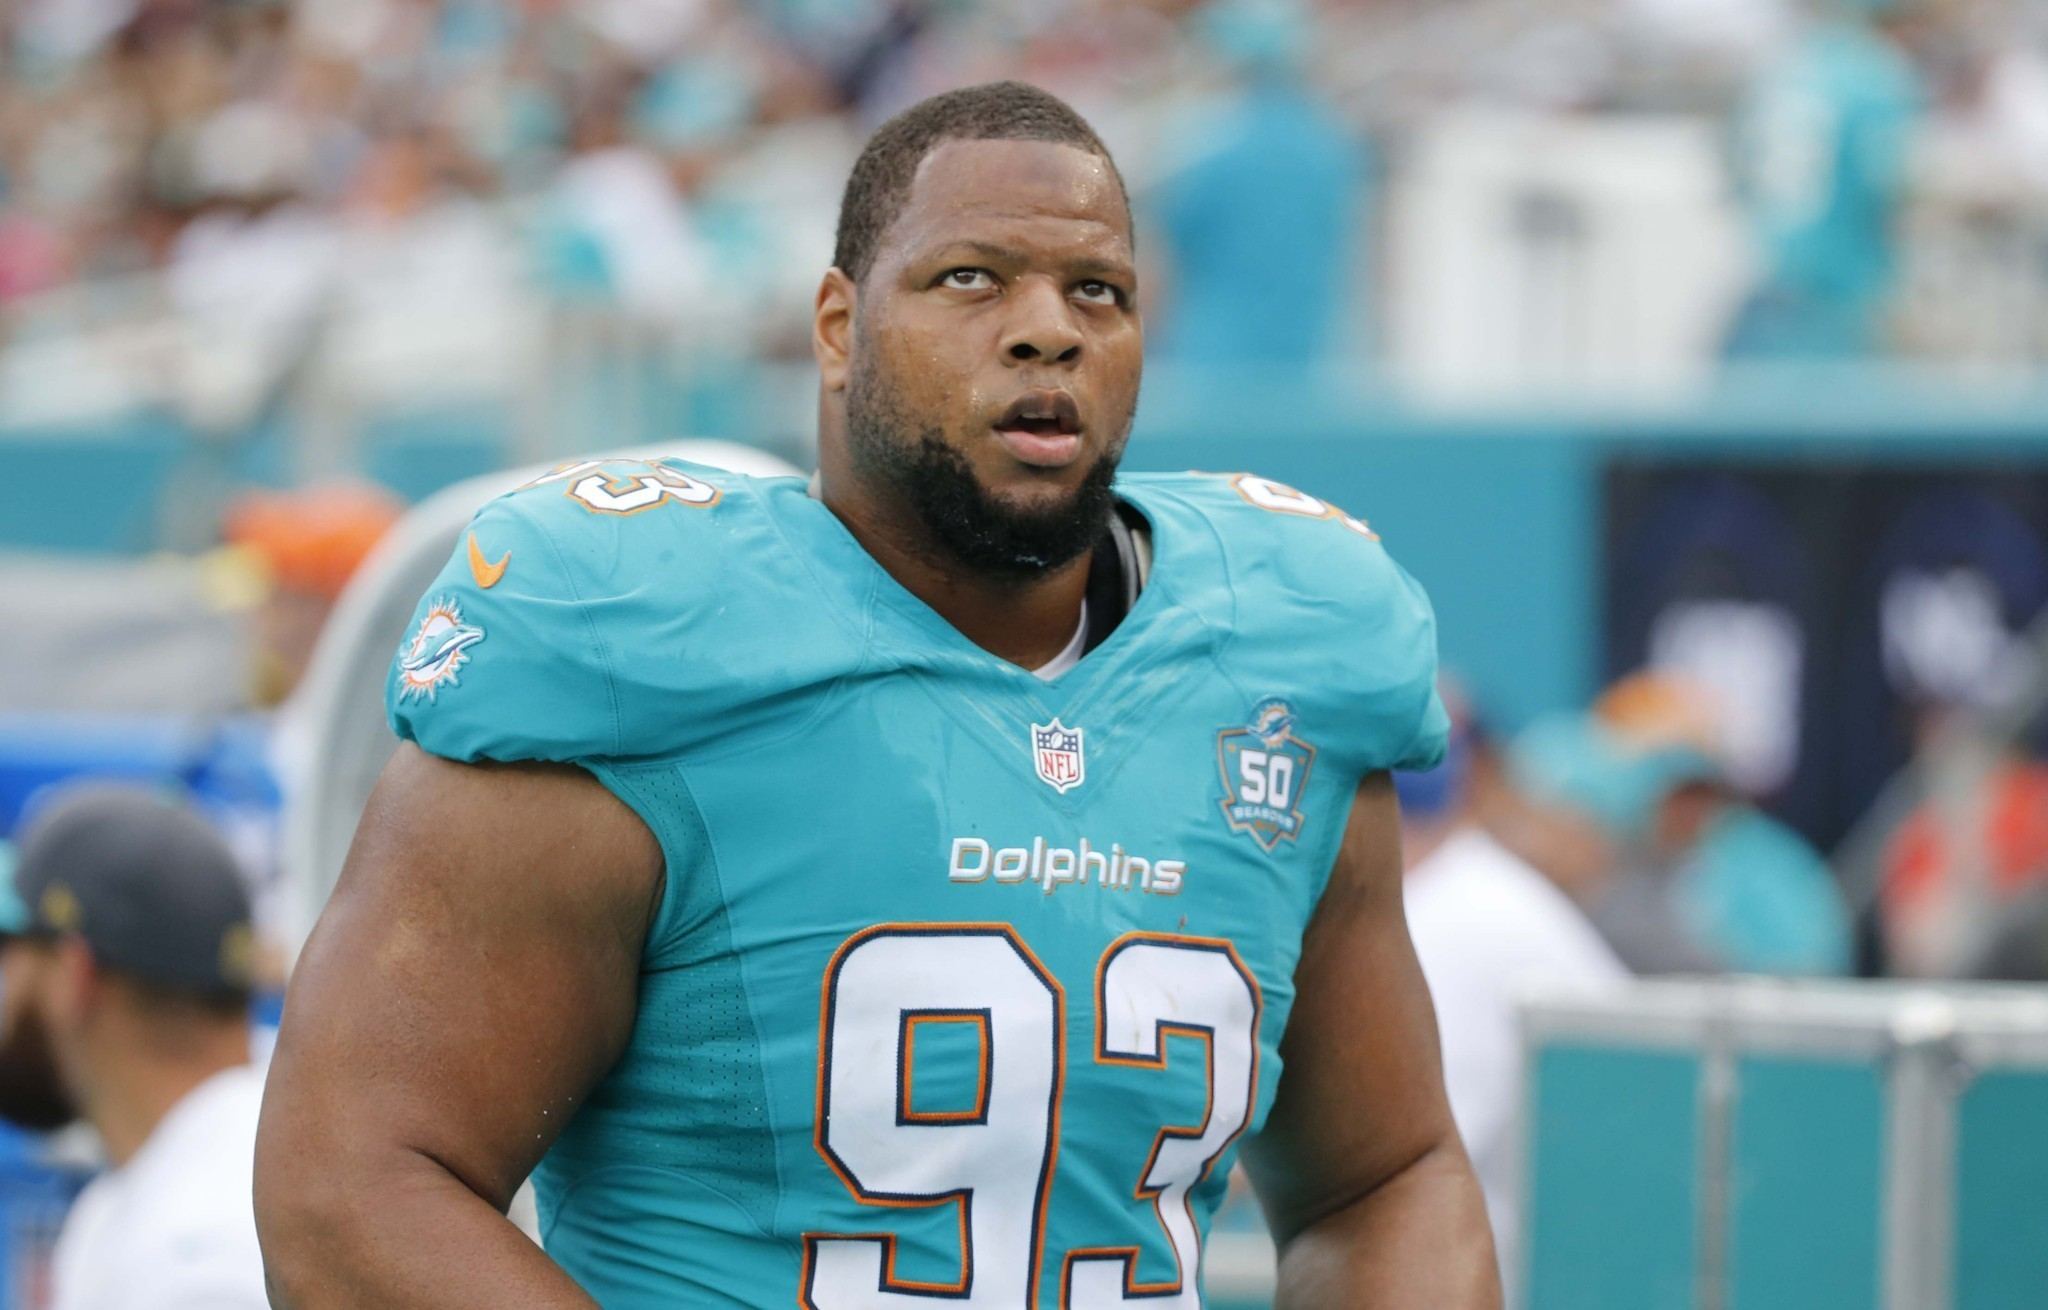 Sfl-ndamukong-suh-shows-up-for-first-week-of-dolphins-ota-field-work-20160524